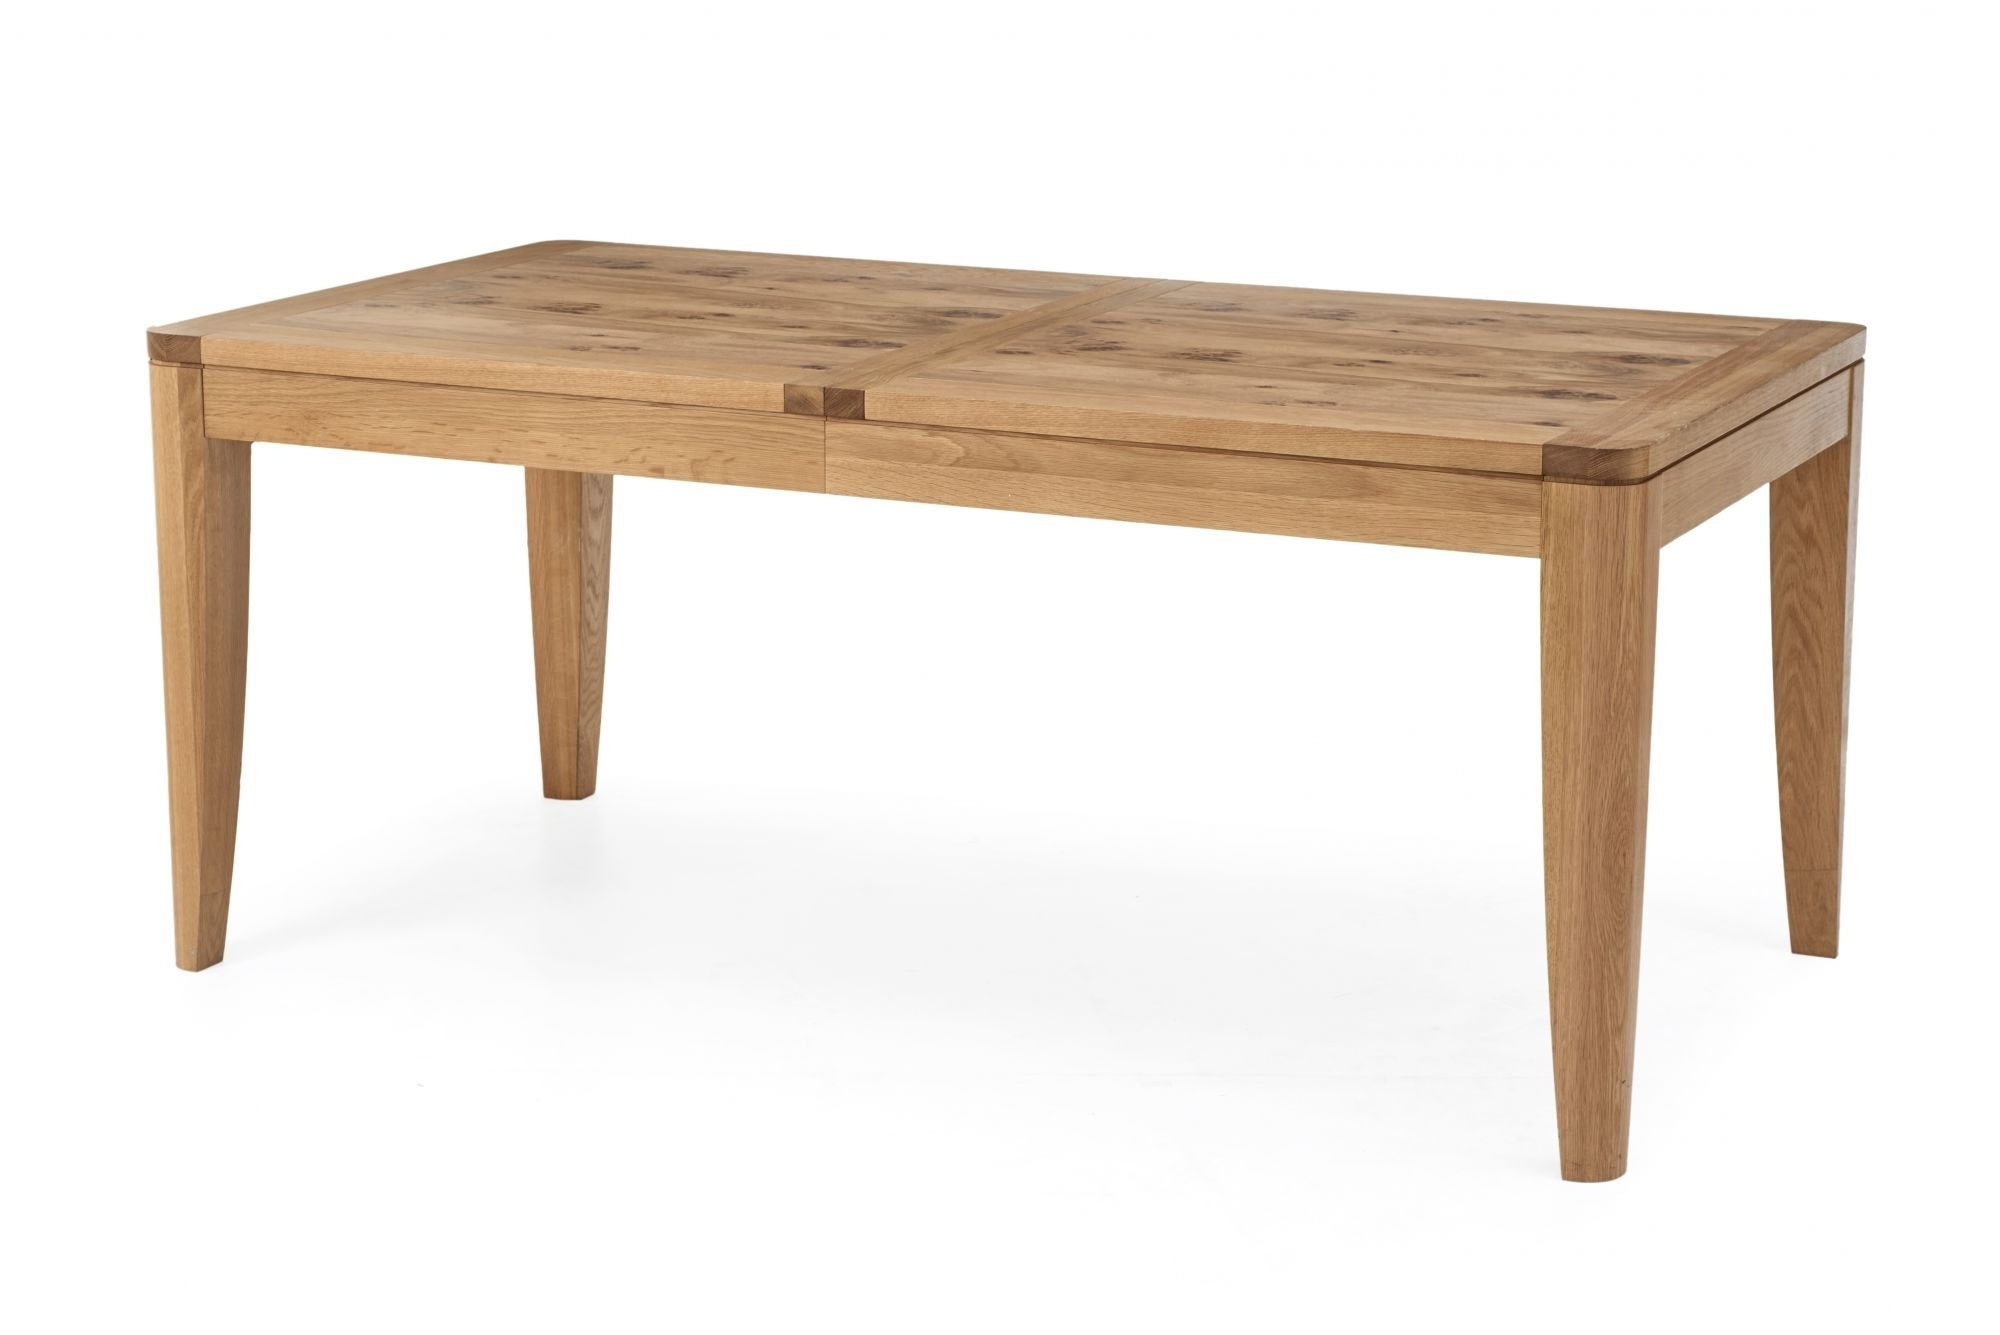 8 Seater Oak Dining Tables In Widely Used Pippy Oak Large 6 8 Seater Extending Dining Table (View 3 of 25)